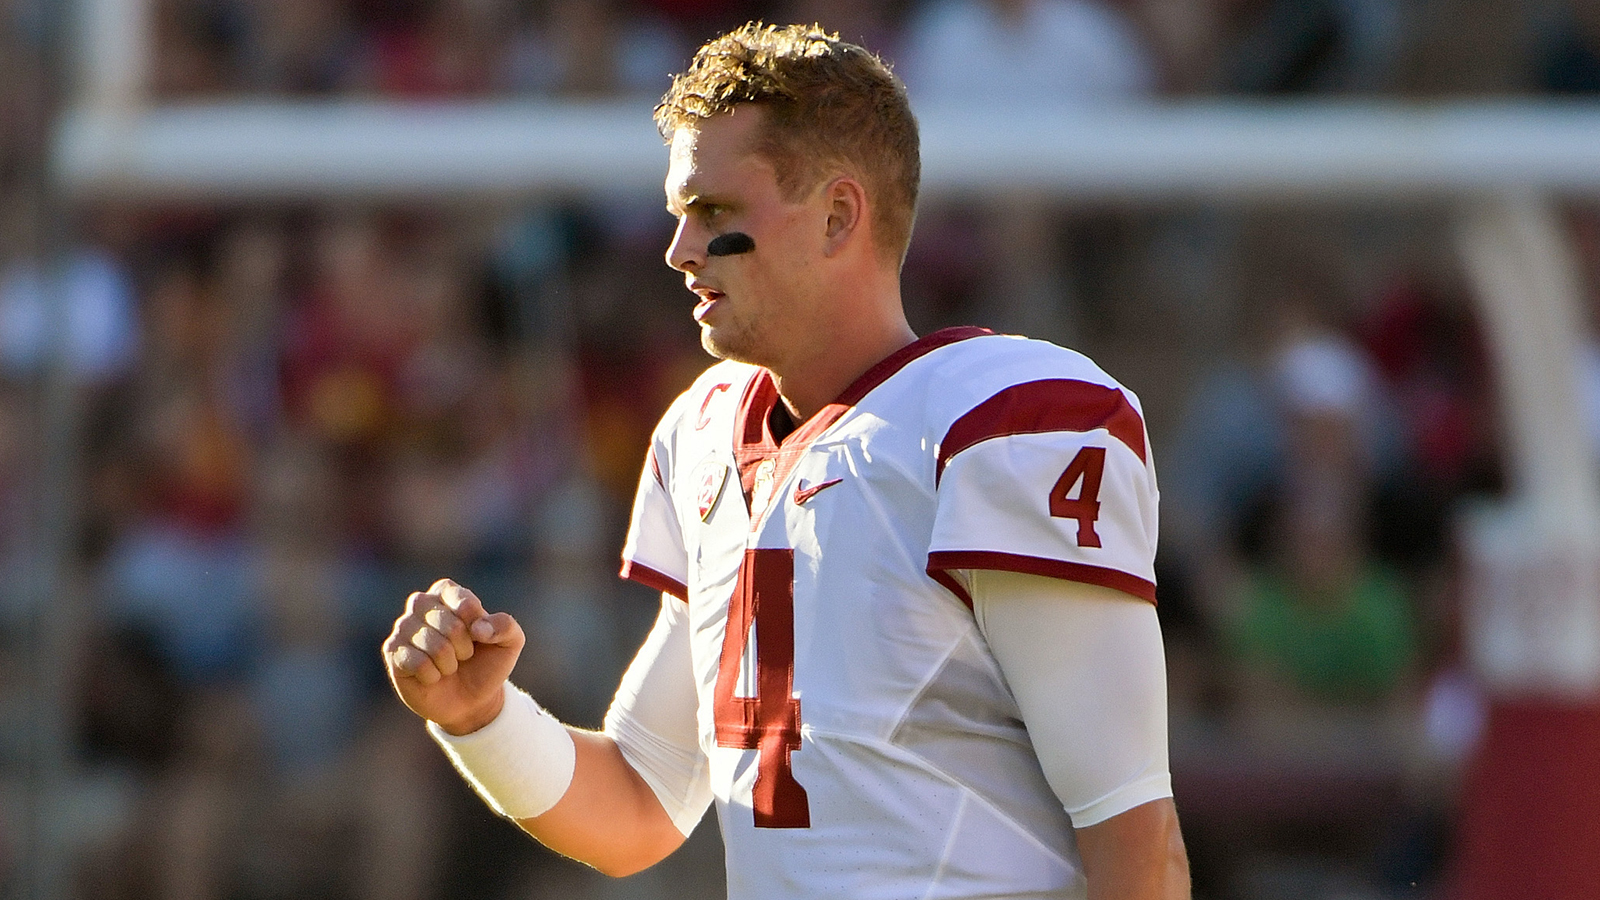 Sep 17, 2016; Stanford, CA, USA; USC Trojans quarterback Max Browne (4) reacts during the first half of a NCAA football game against the Stanford Cardinal at Stanford Stadium. Mandatory Credit: Kirby Lee-USA TODAY Sports